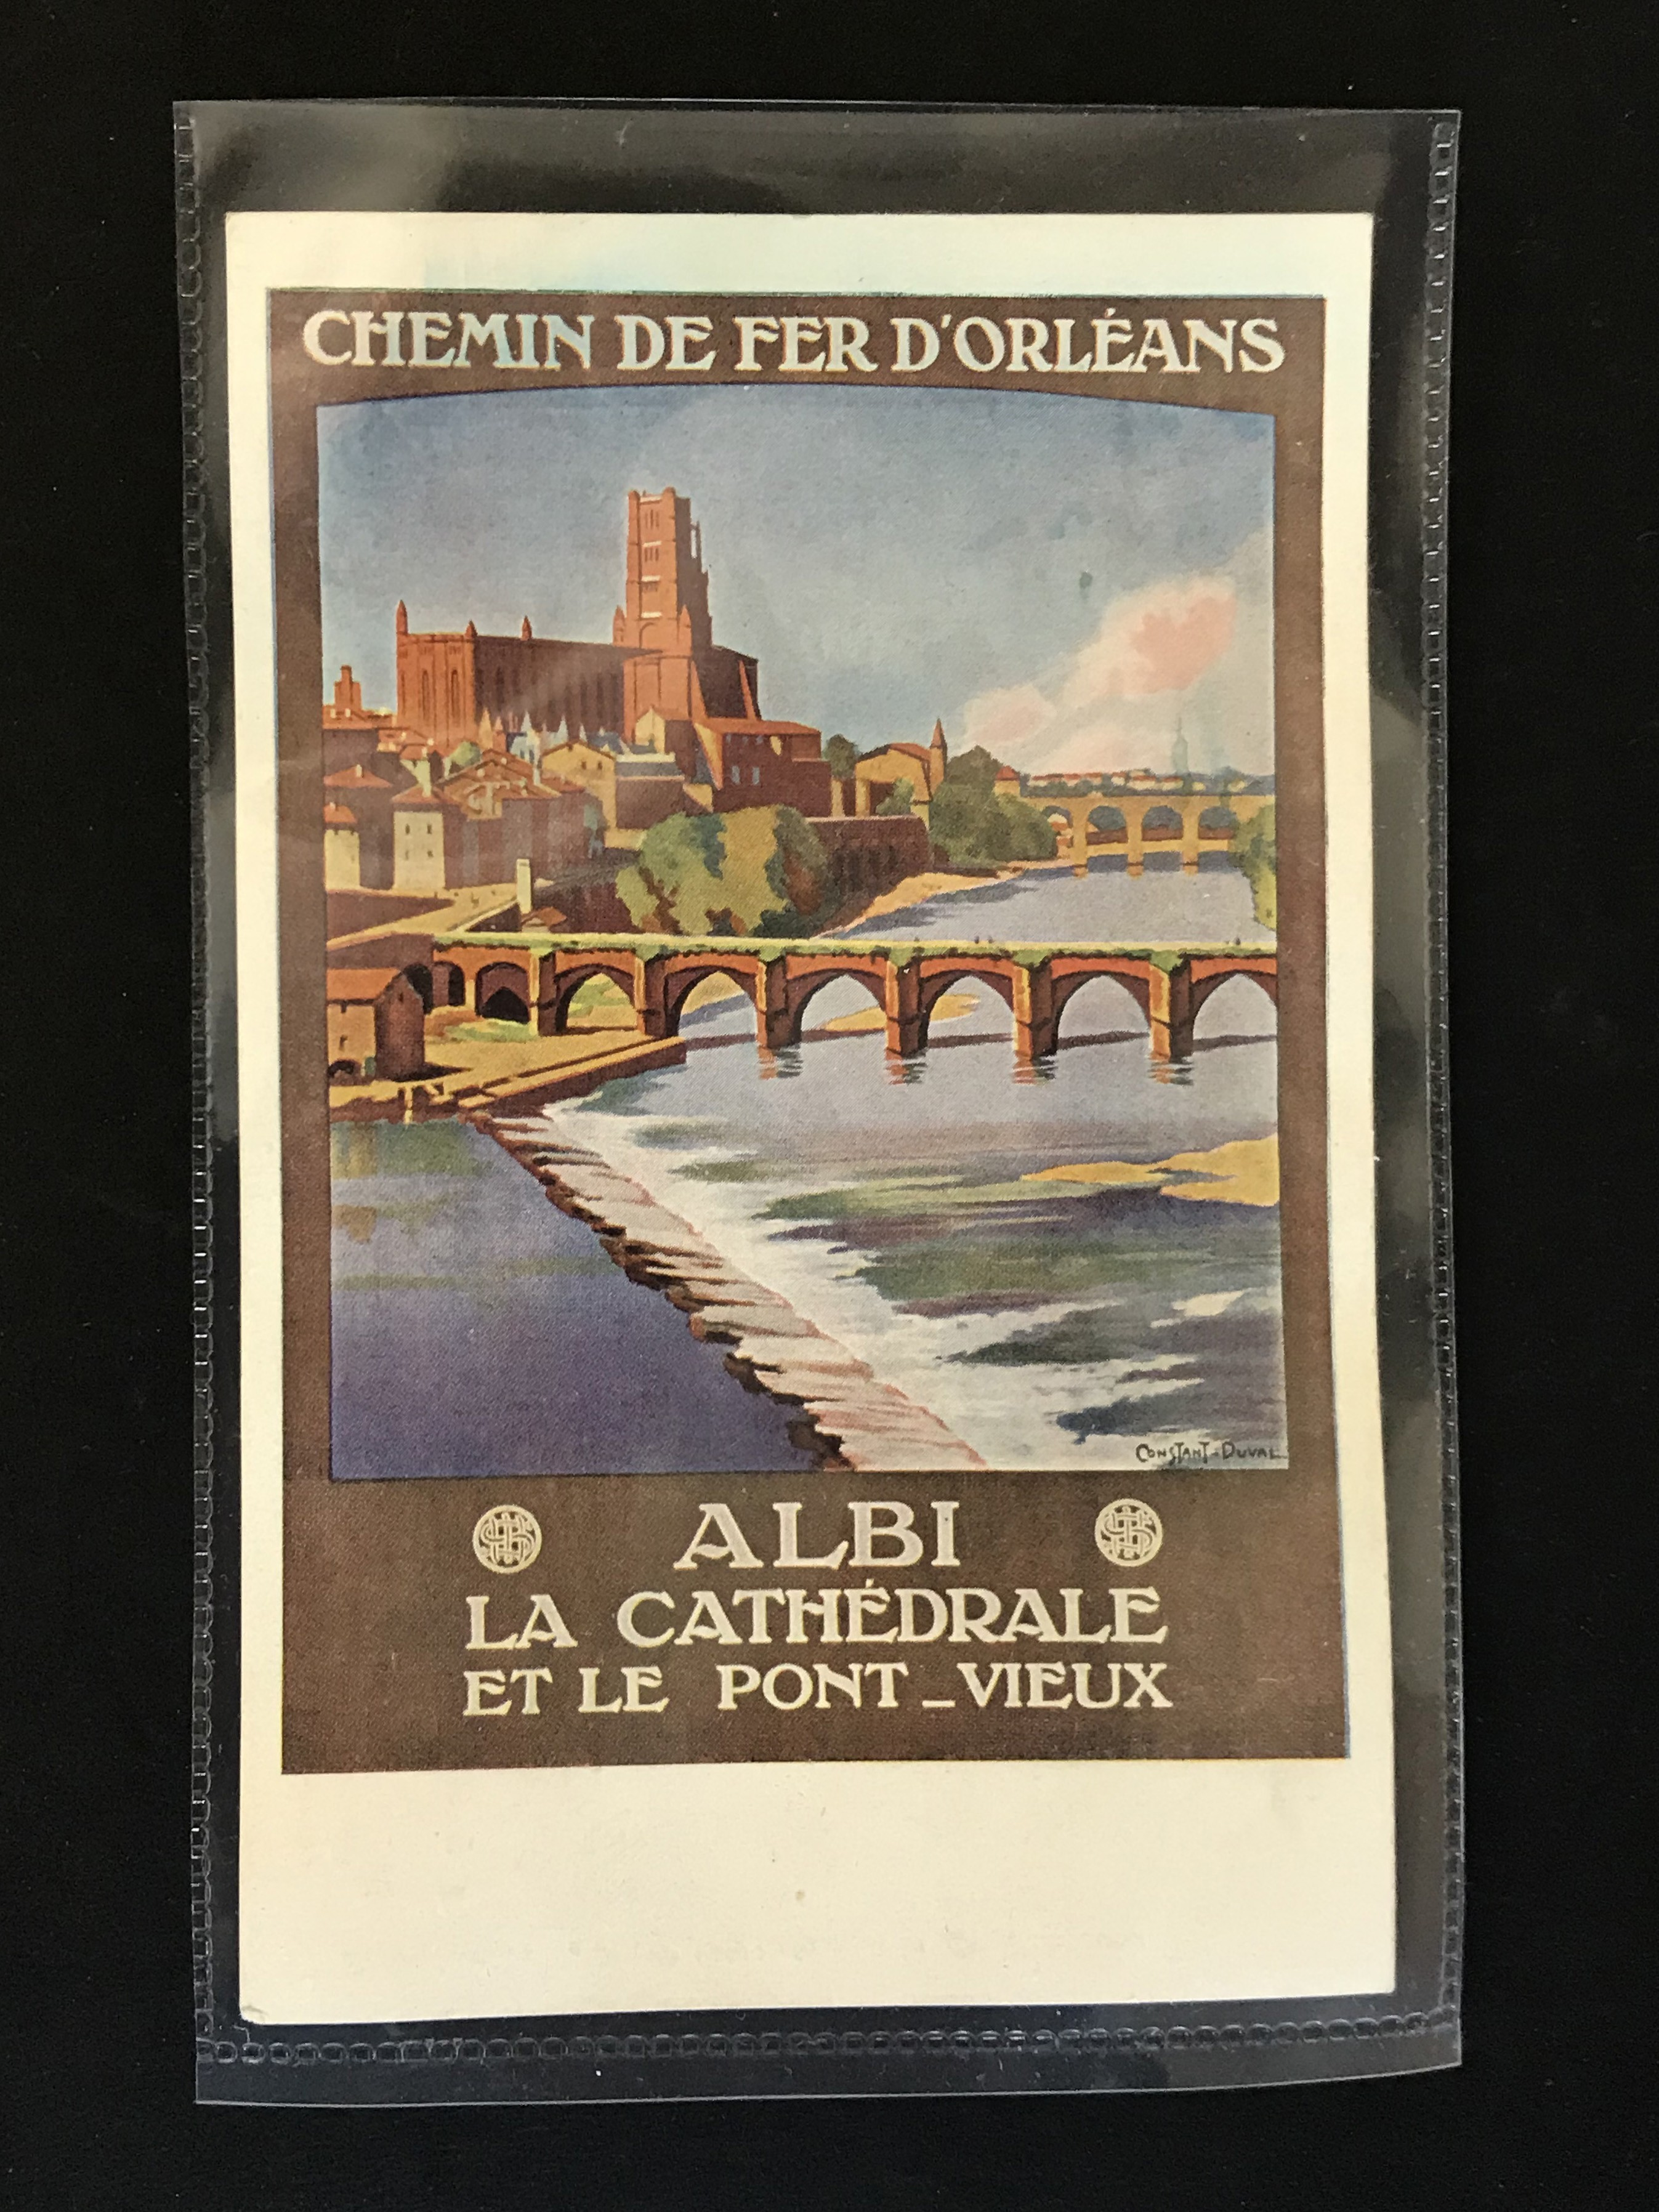 SIX FRENCH OLD POSTCARDS PROMOTING TOURIST DESTINATIONS - Image 5 of 8